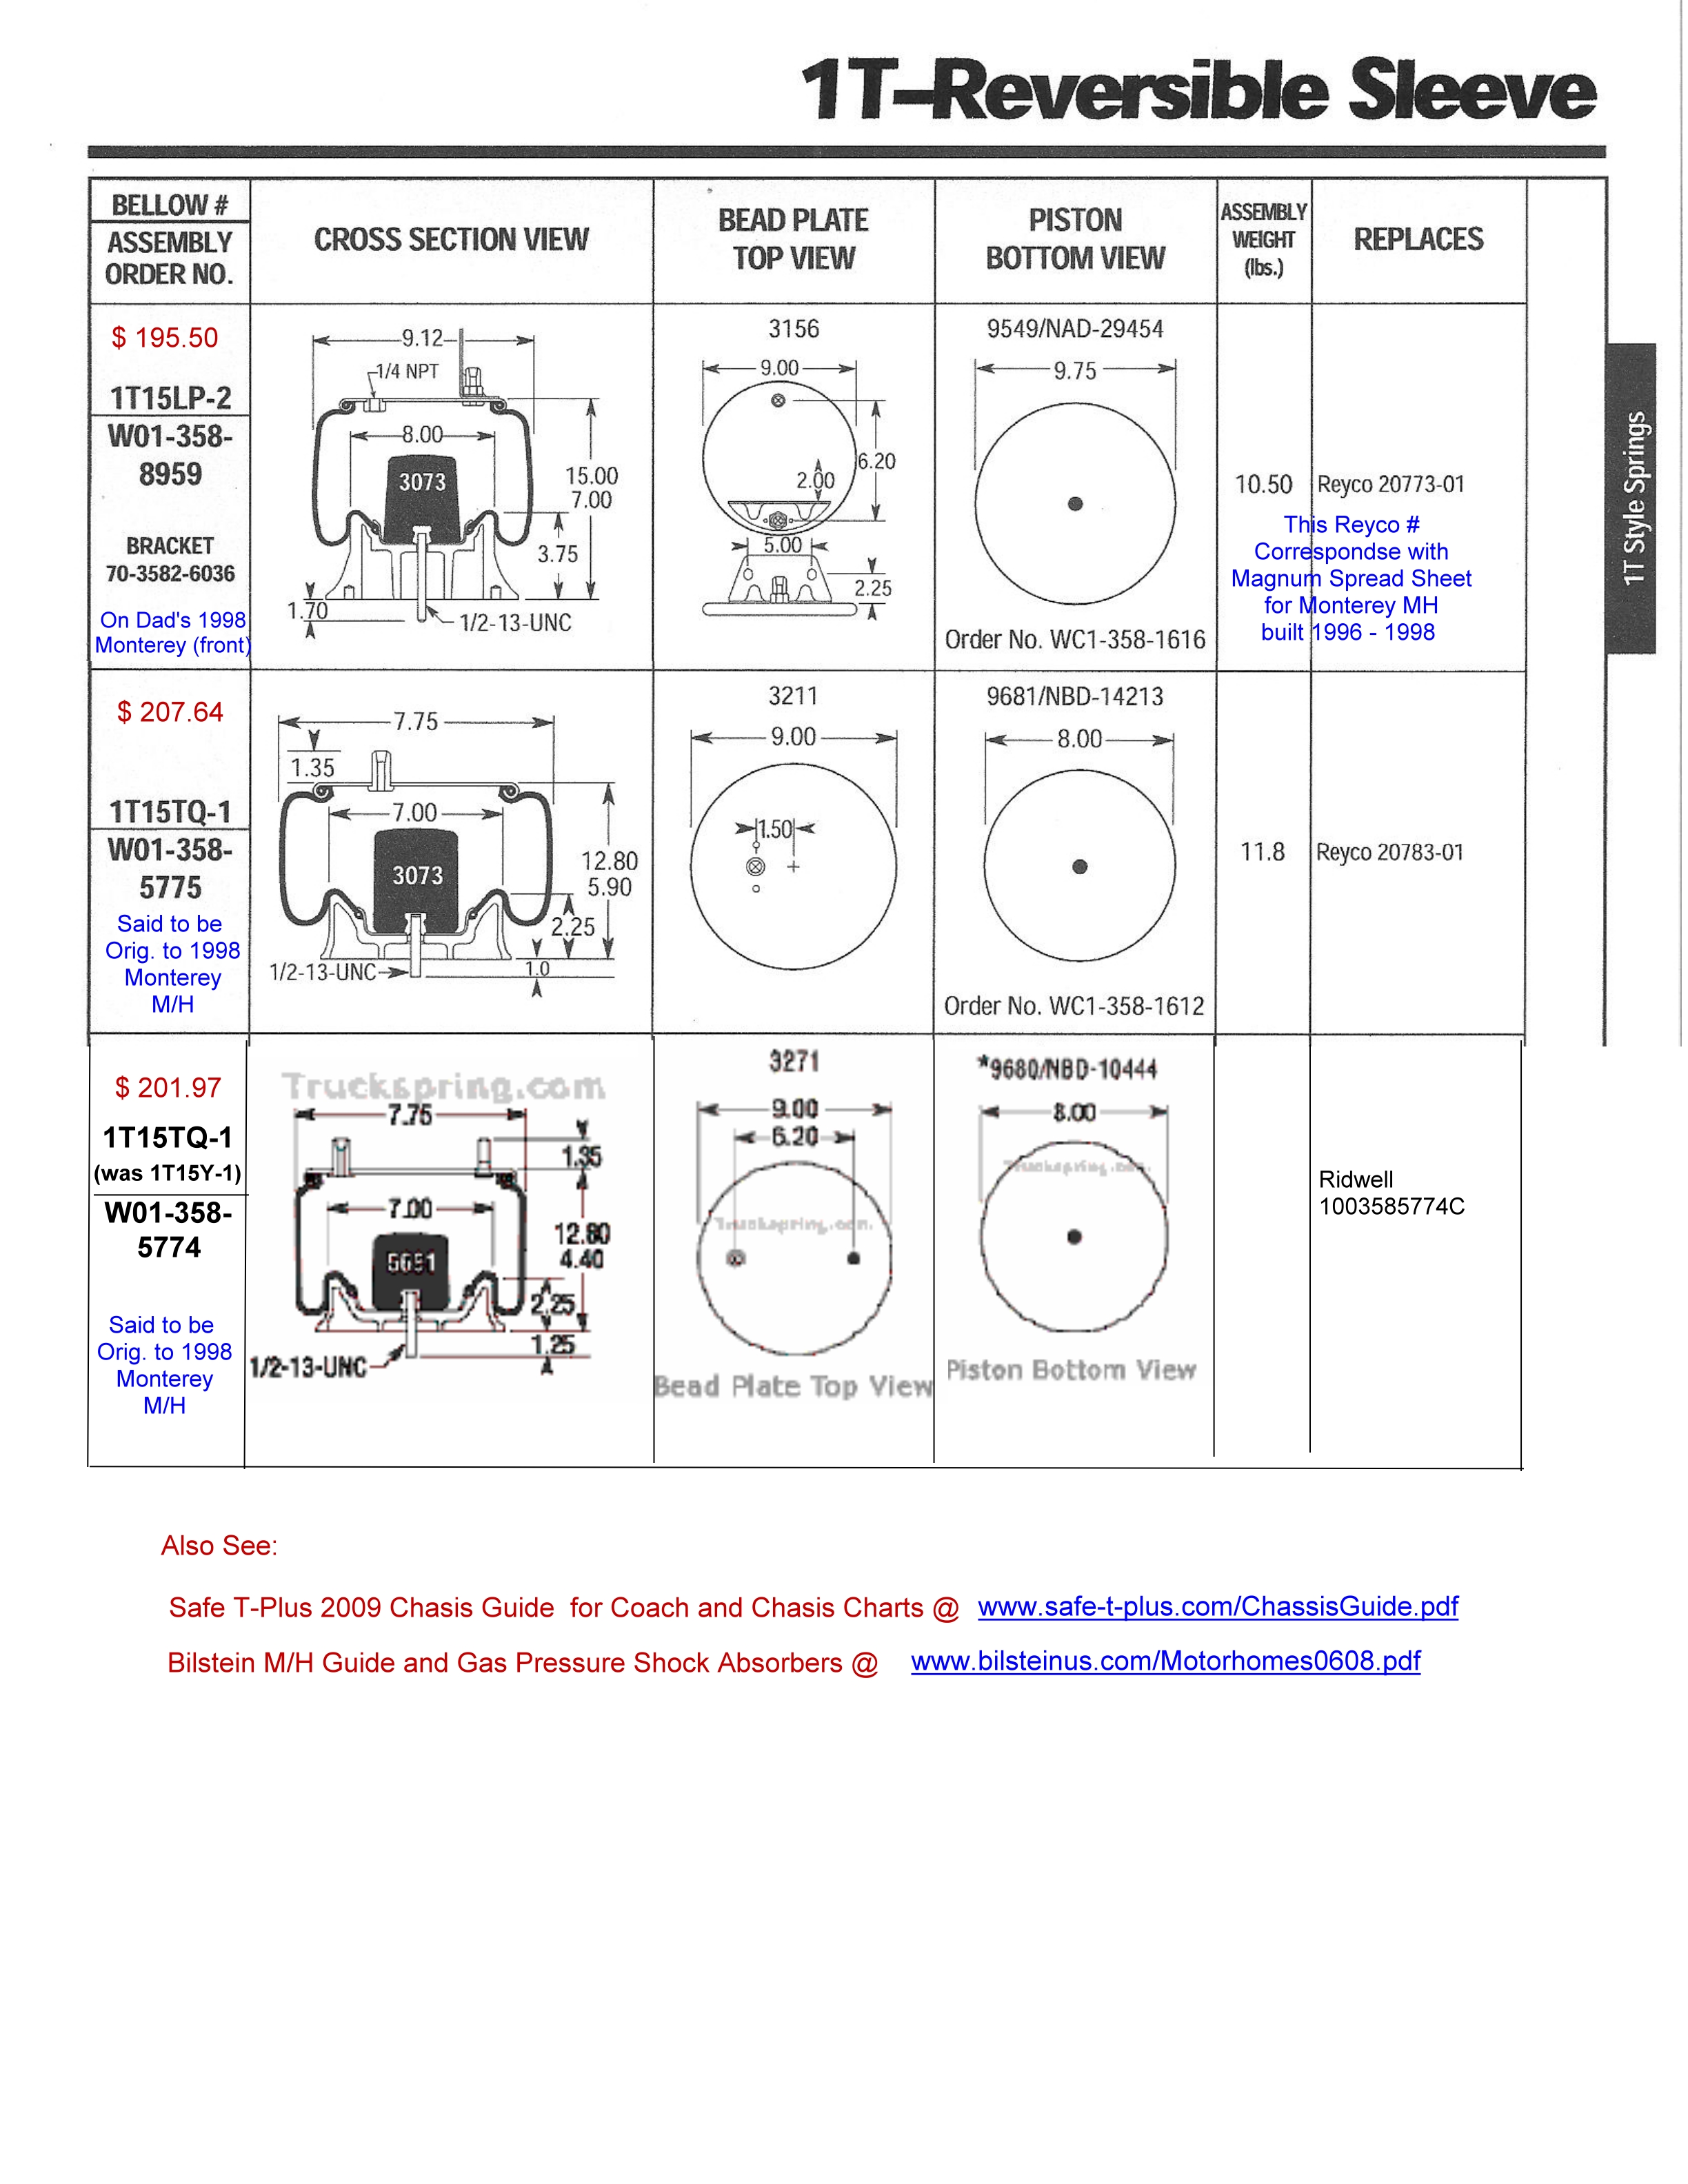 1998 Beaver Monterey Coach Air Spring ID Chart beaver info page Solenoid Wiring Diagram at n-0.co